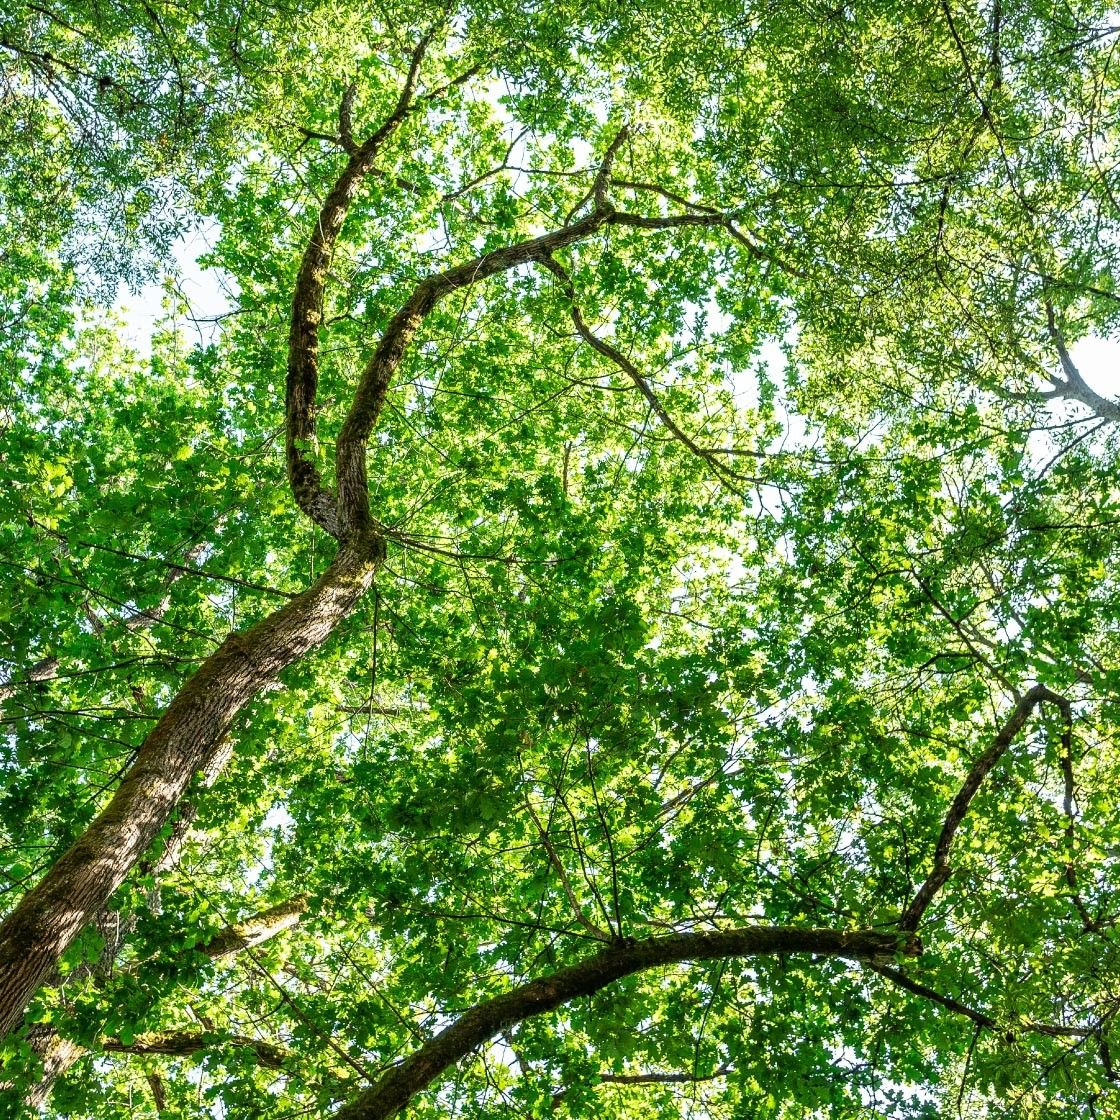 A healthy tree canopy which will help protect against climate change